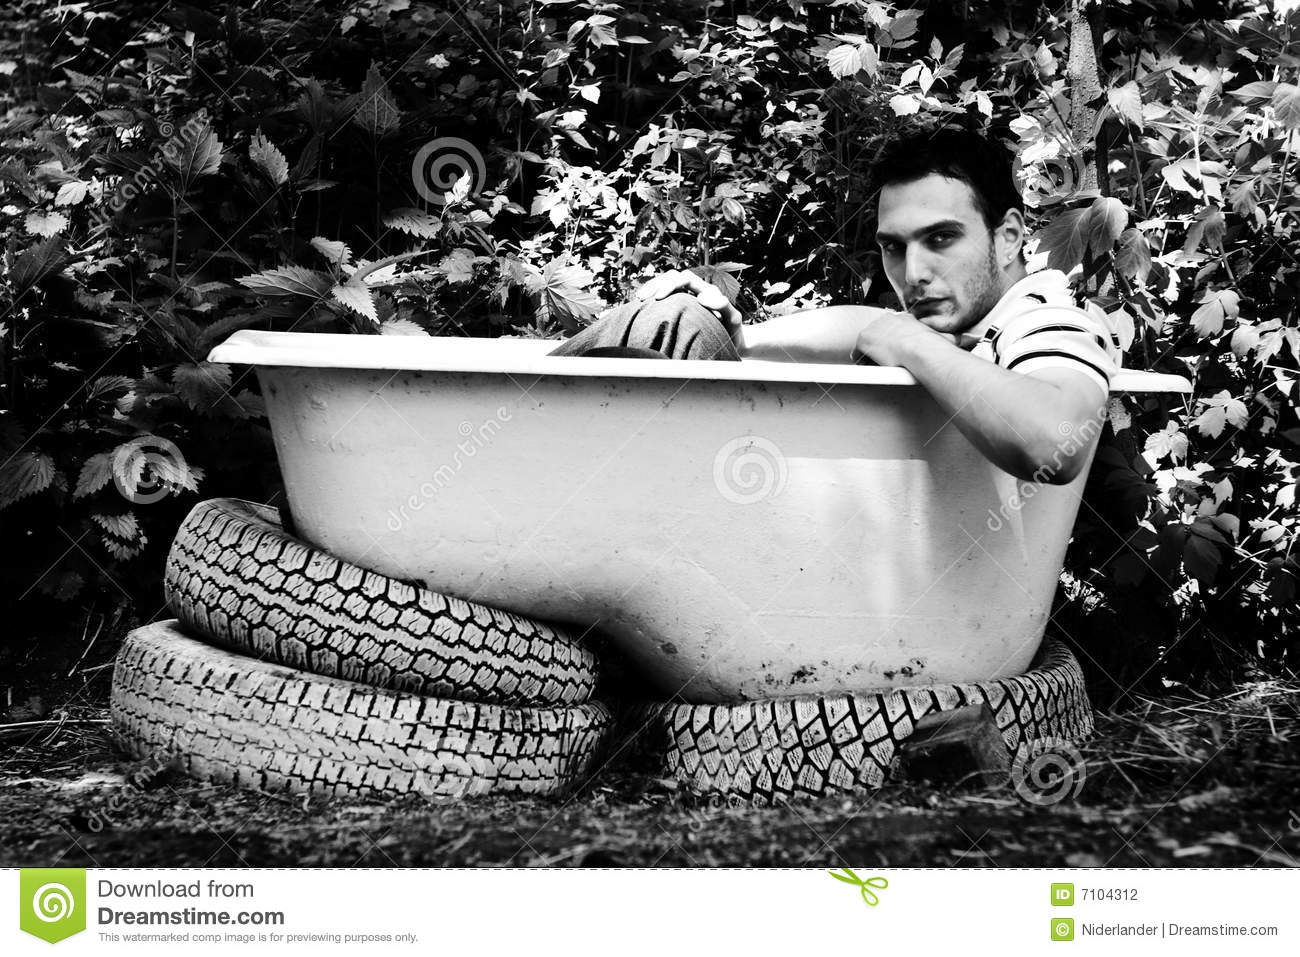 Man Sitting In The Bathtub Stock Photography  Image 7104312